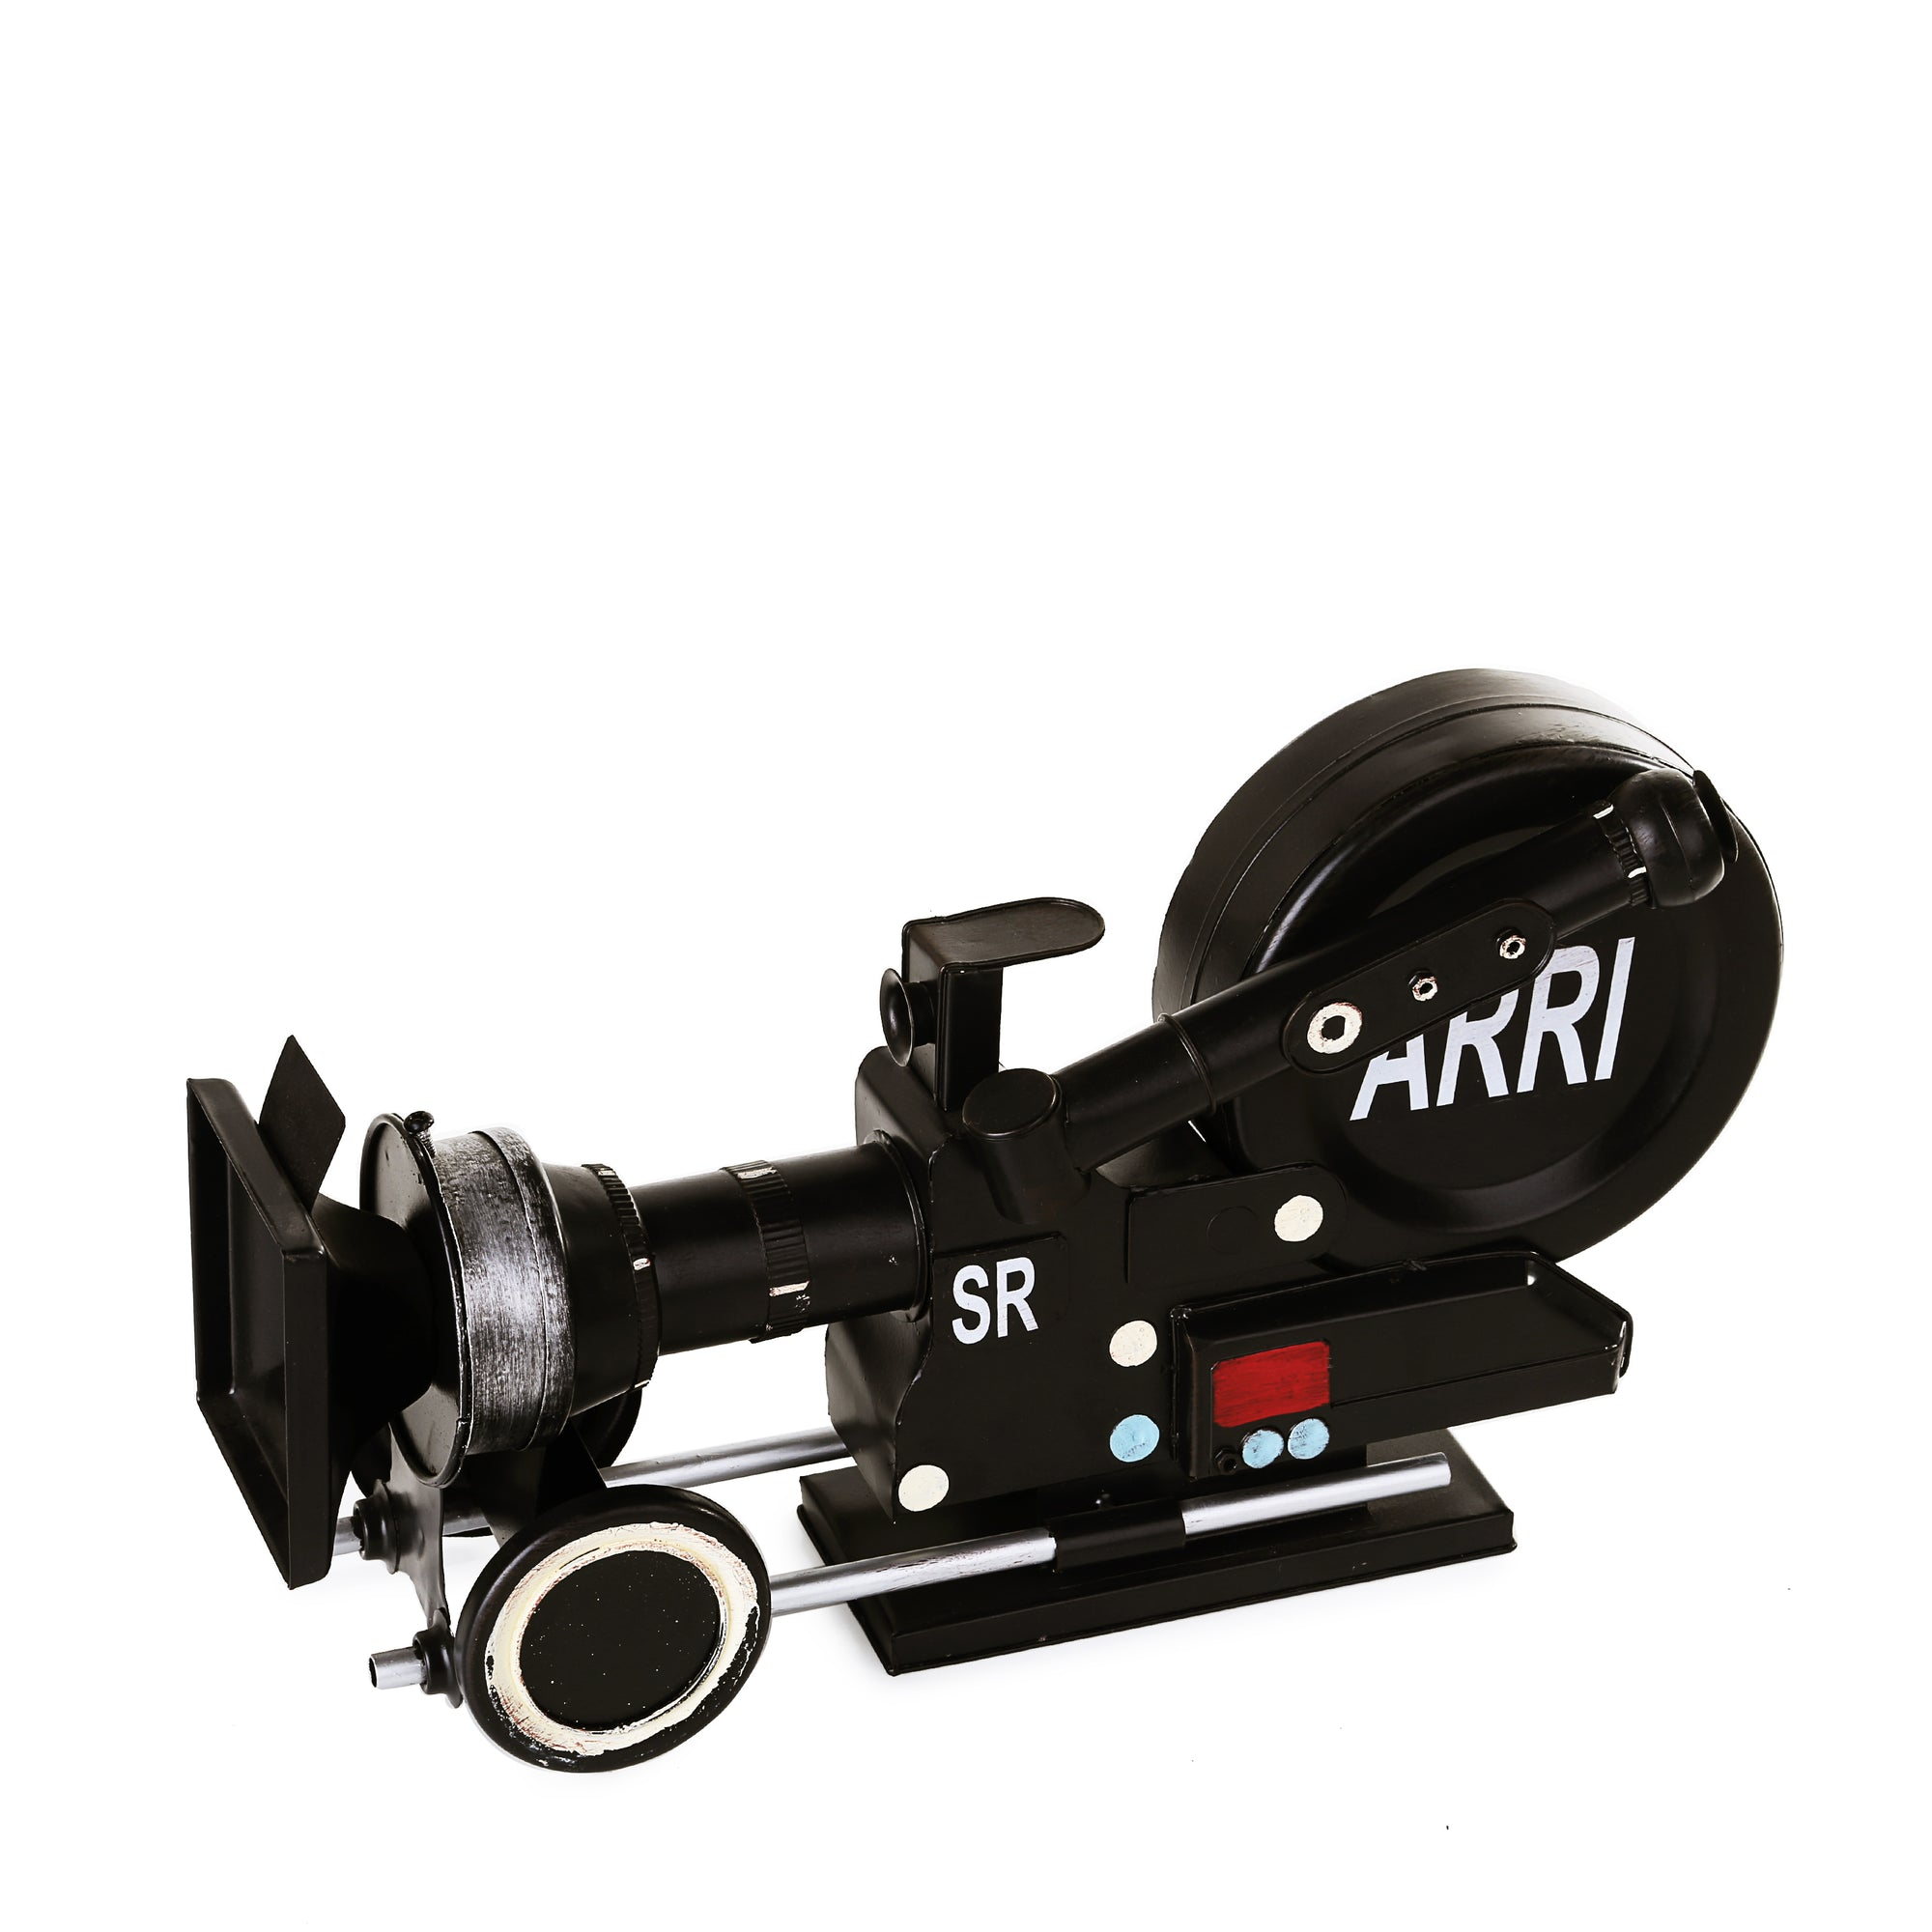 ARRI 16 SR3 Film Camera